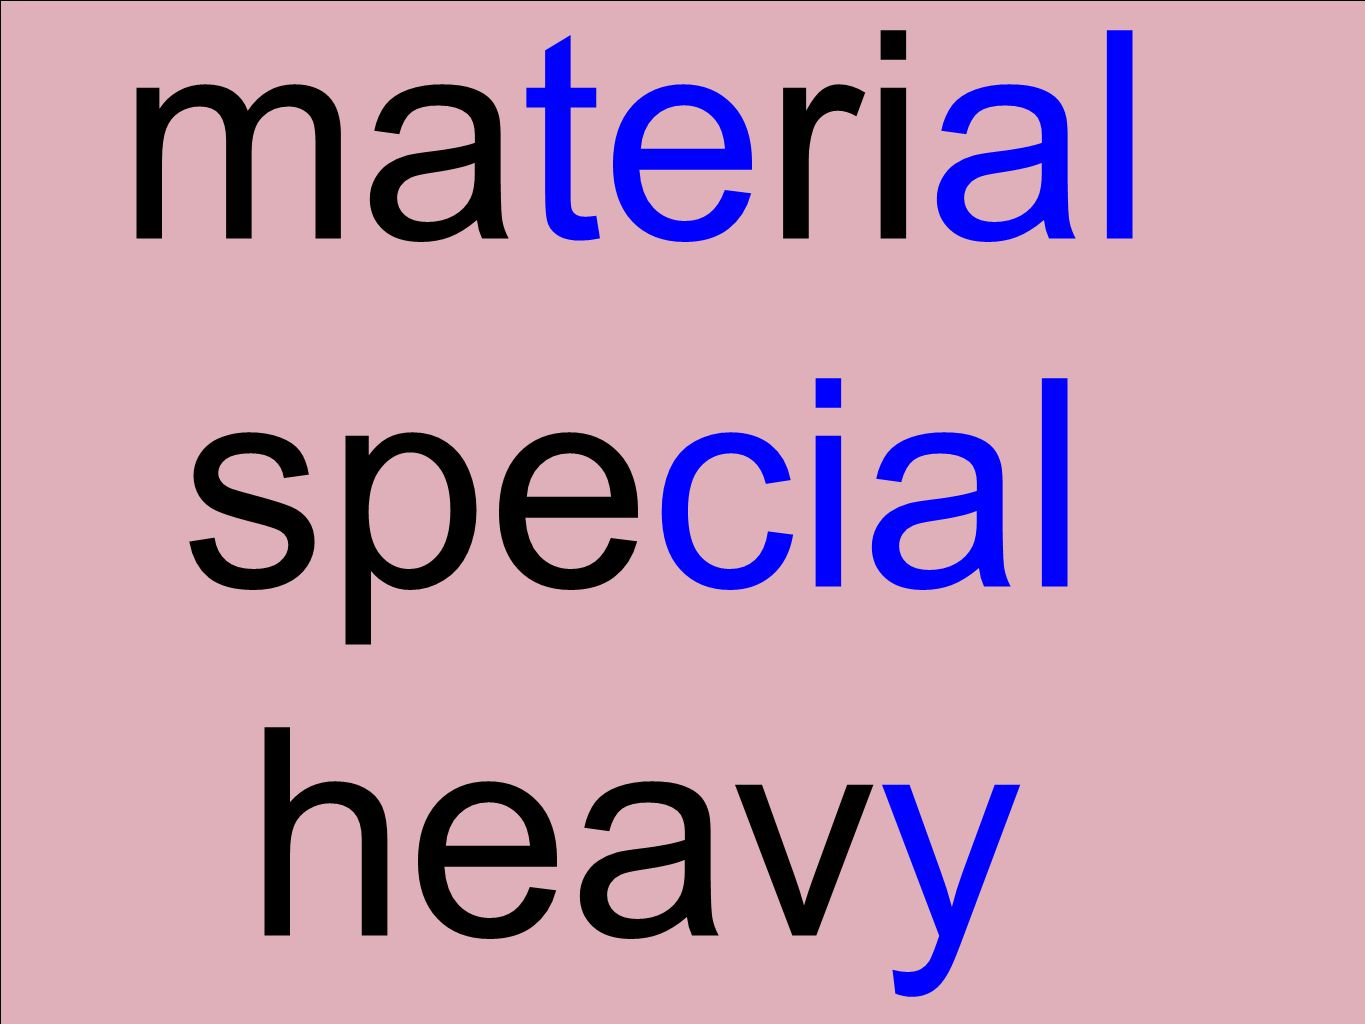 material special heavy